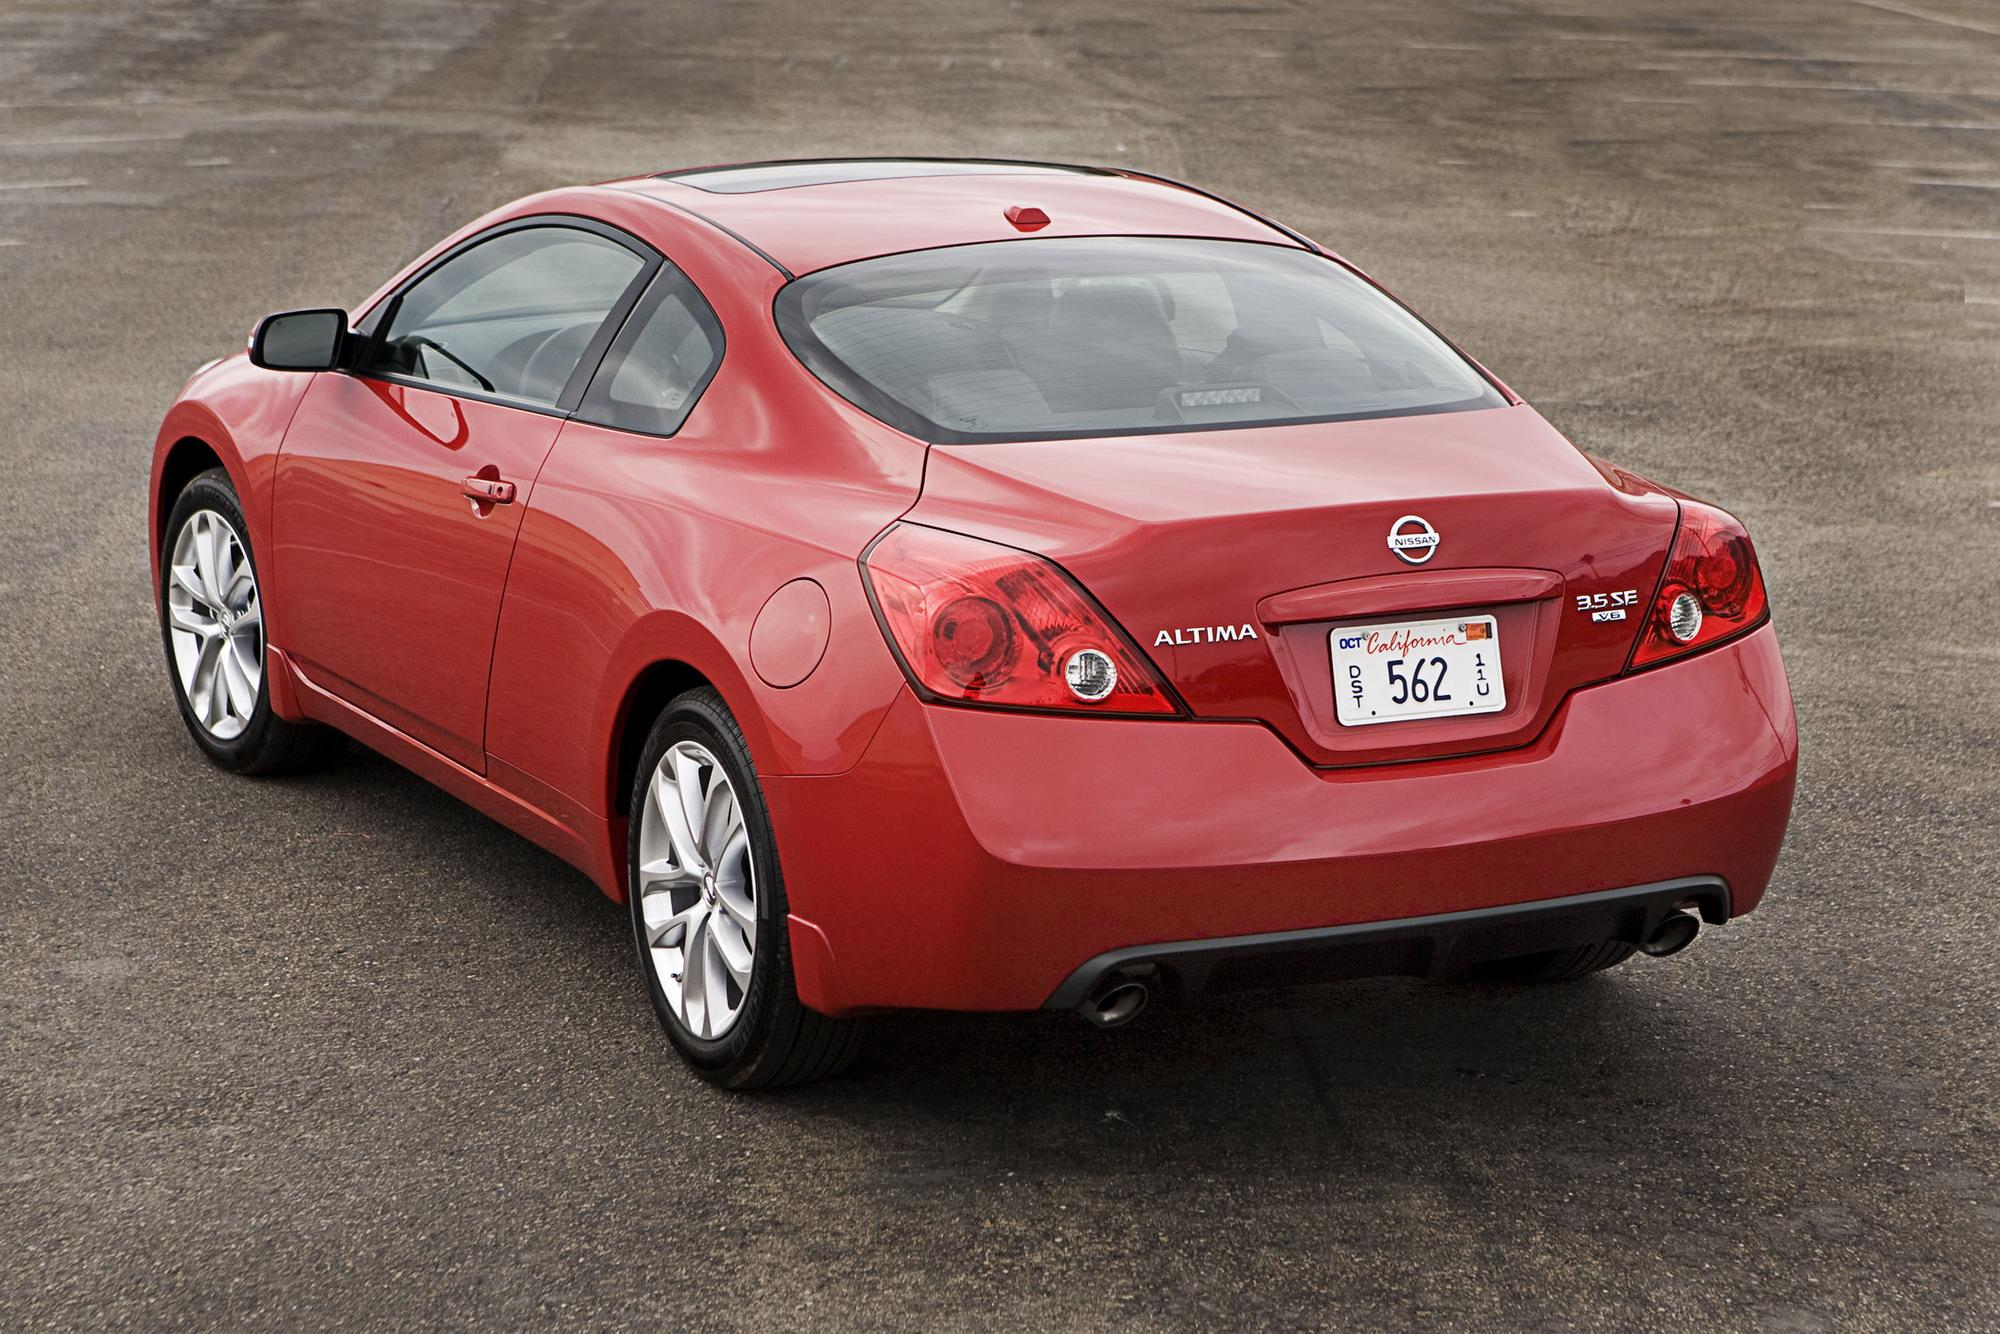 2009 nissan altima coupe review top speed. Black Bedroom Furniture Sets. Home Design Ideas